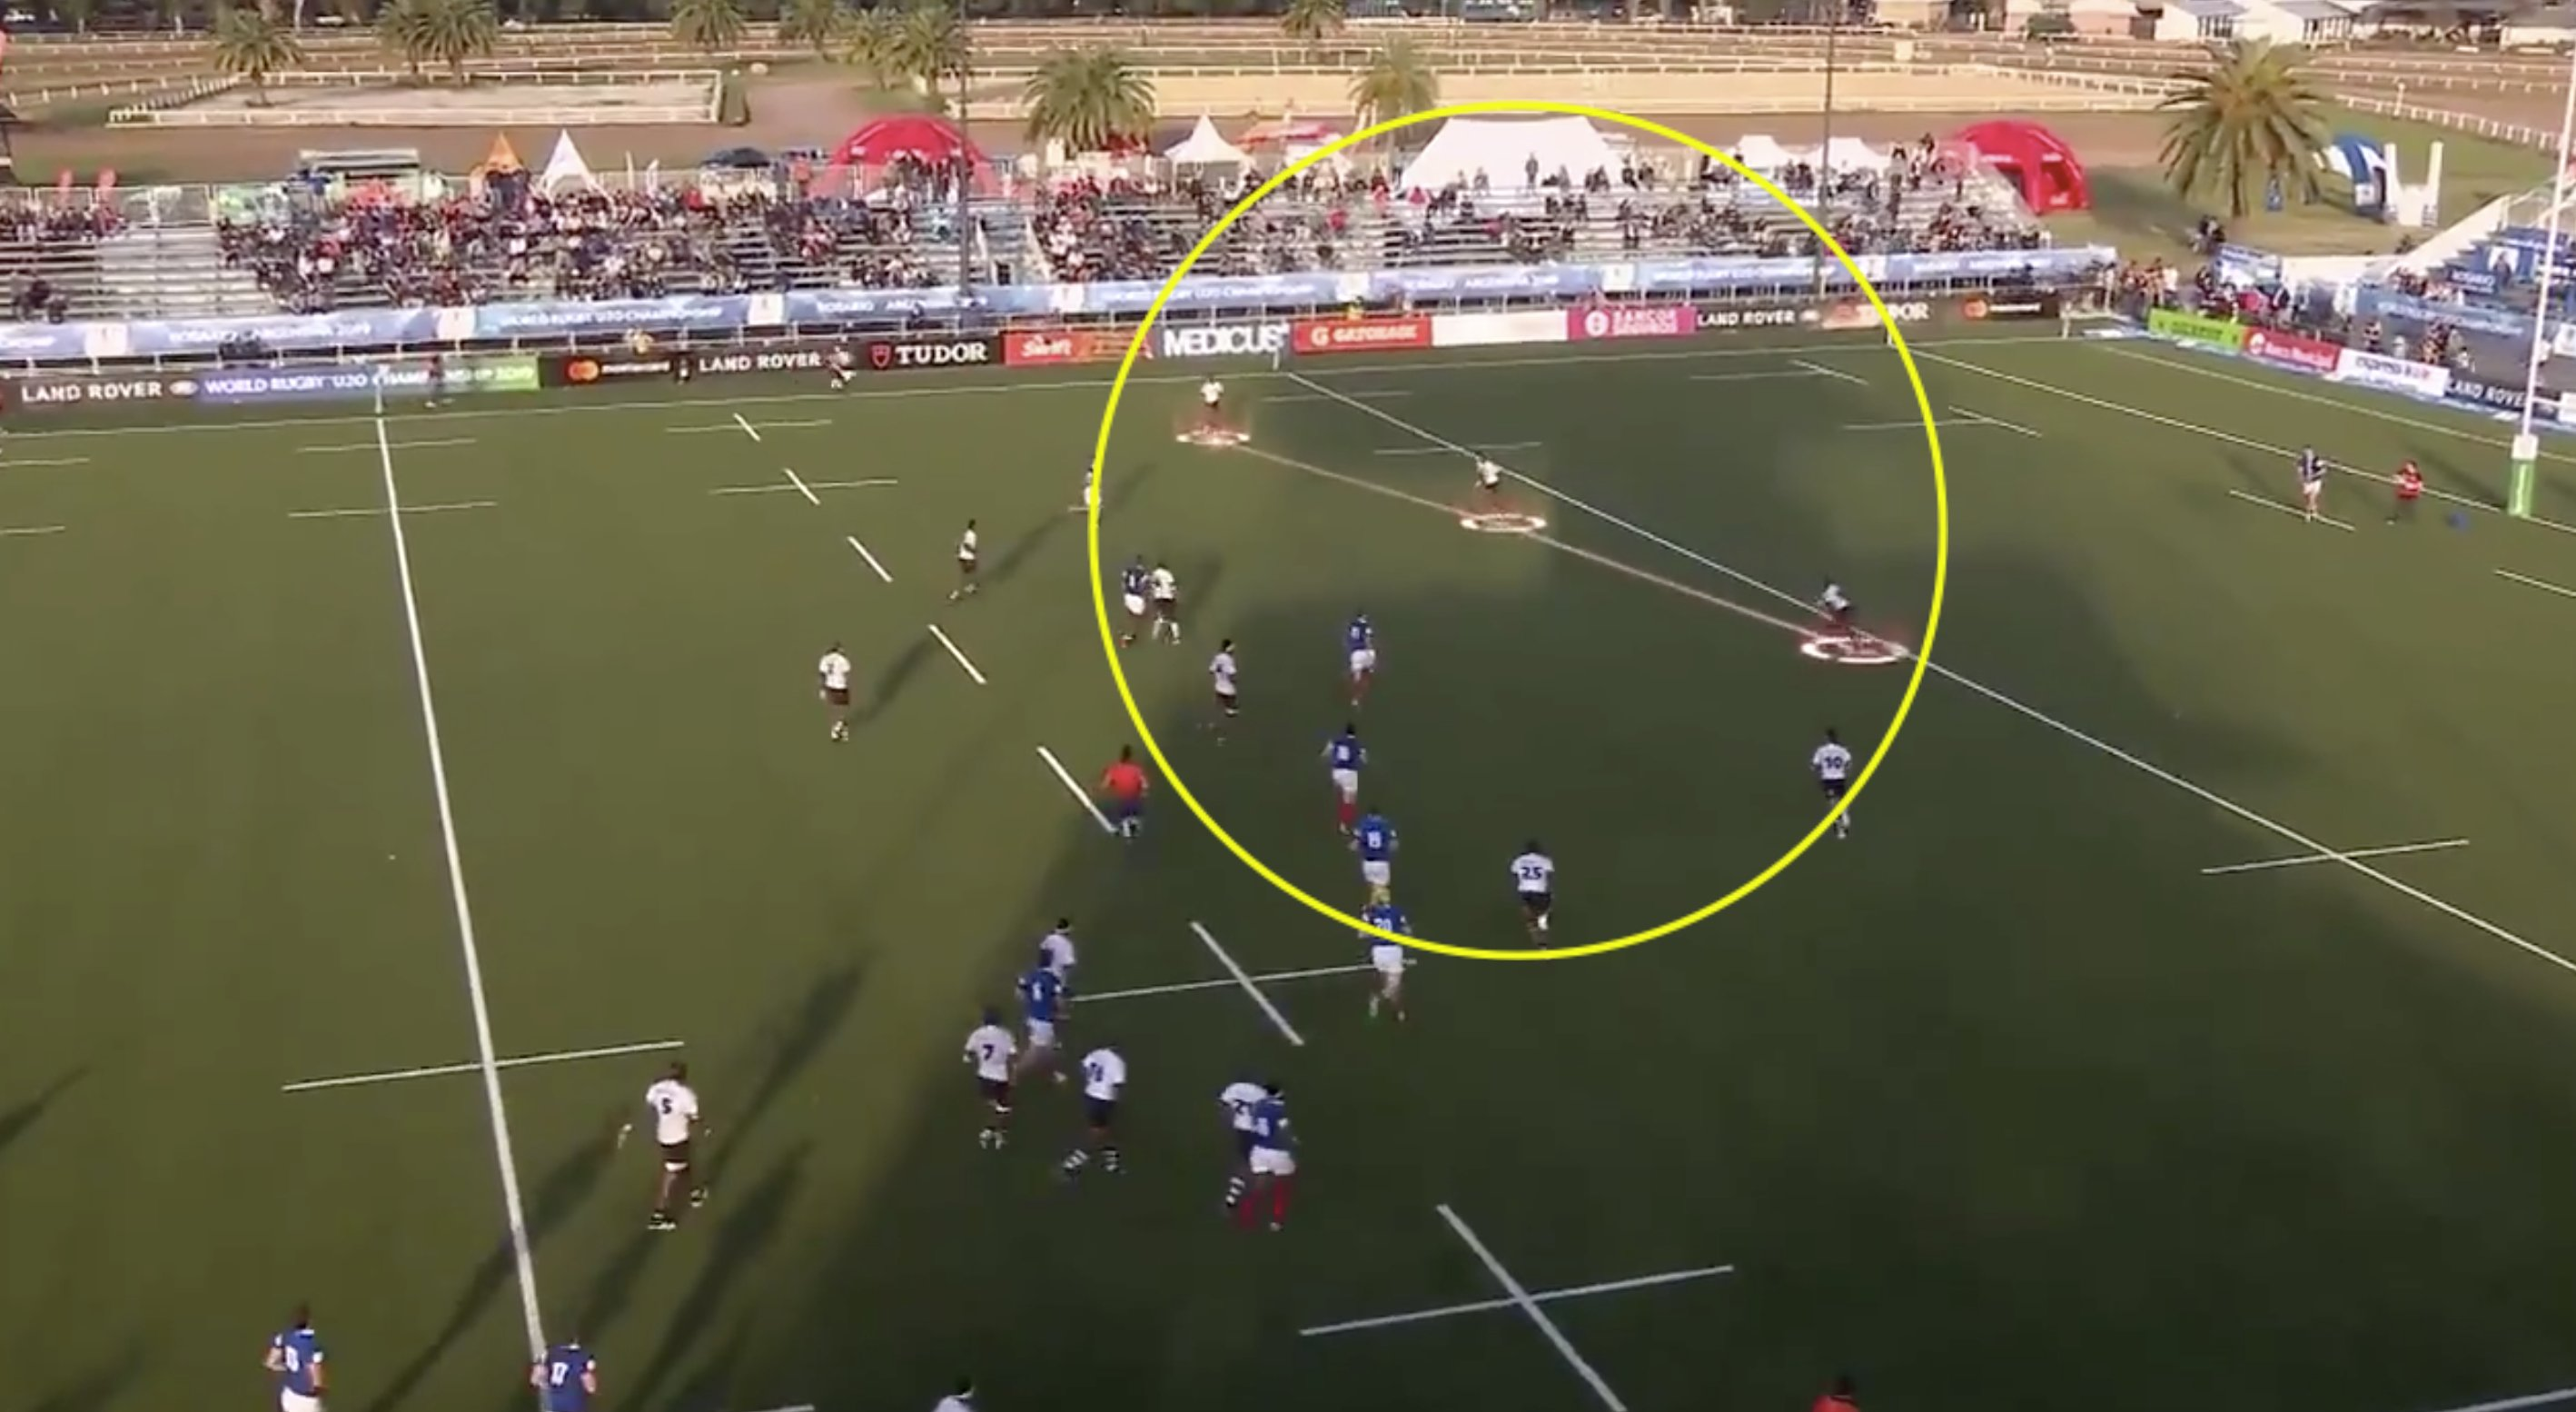 Fijian Under 20's crucify France for giving them about 3 feet of space